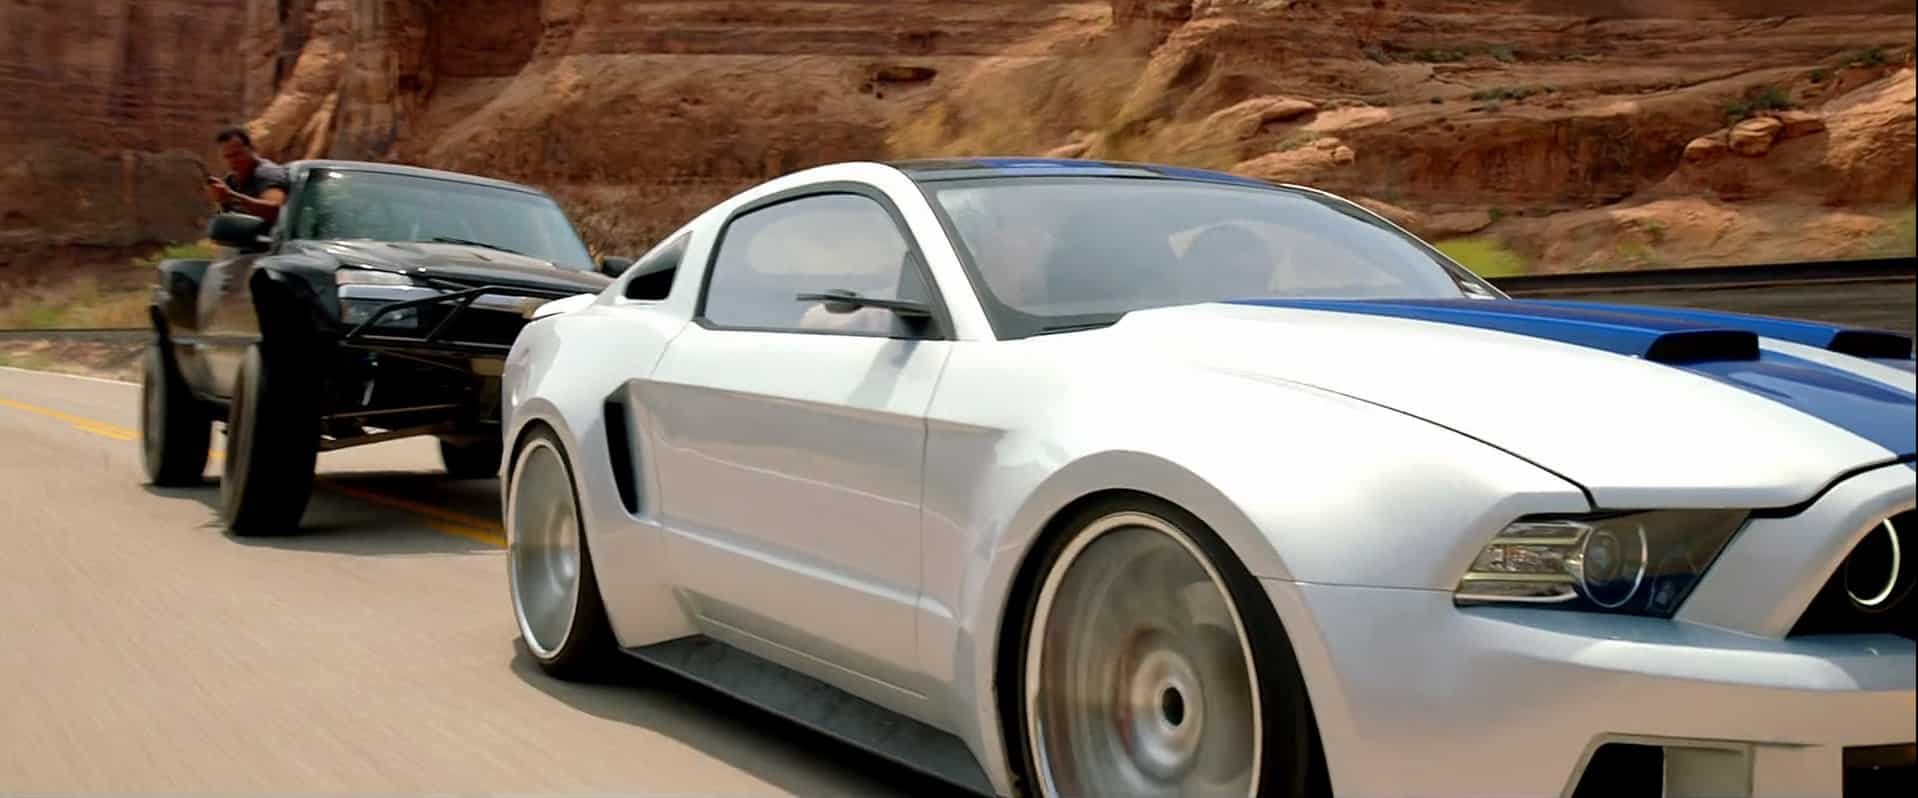 Need For Speed 2014 Review